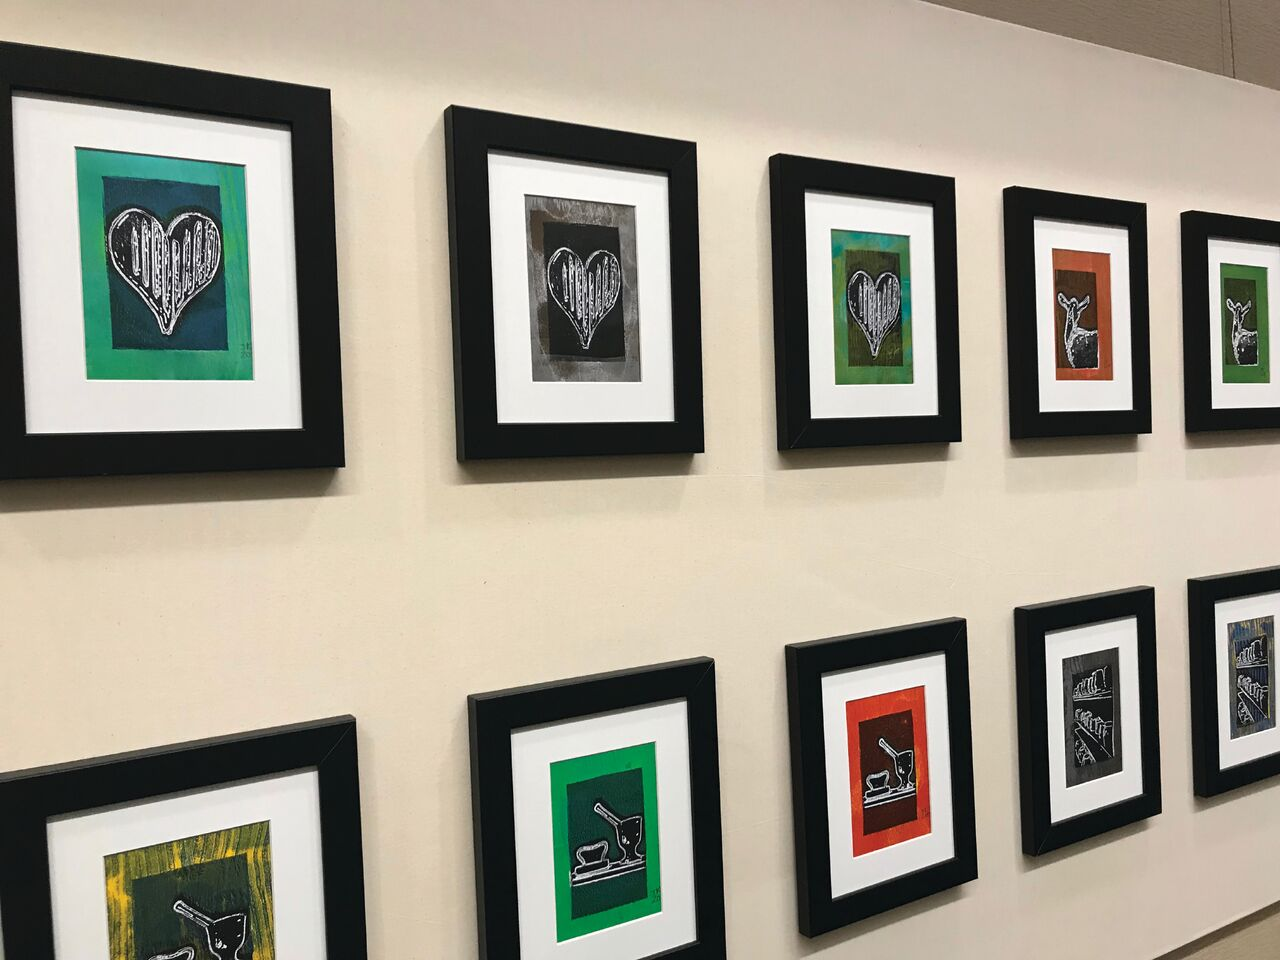 A row of framed artwork hung parallel on a wall.